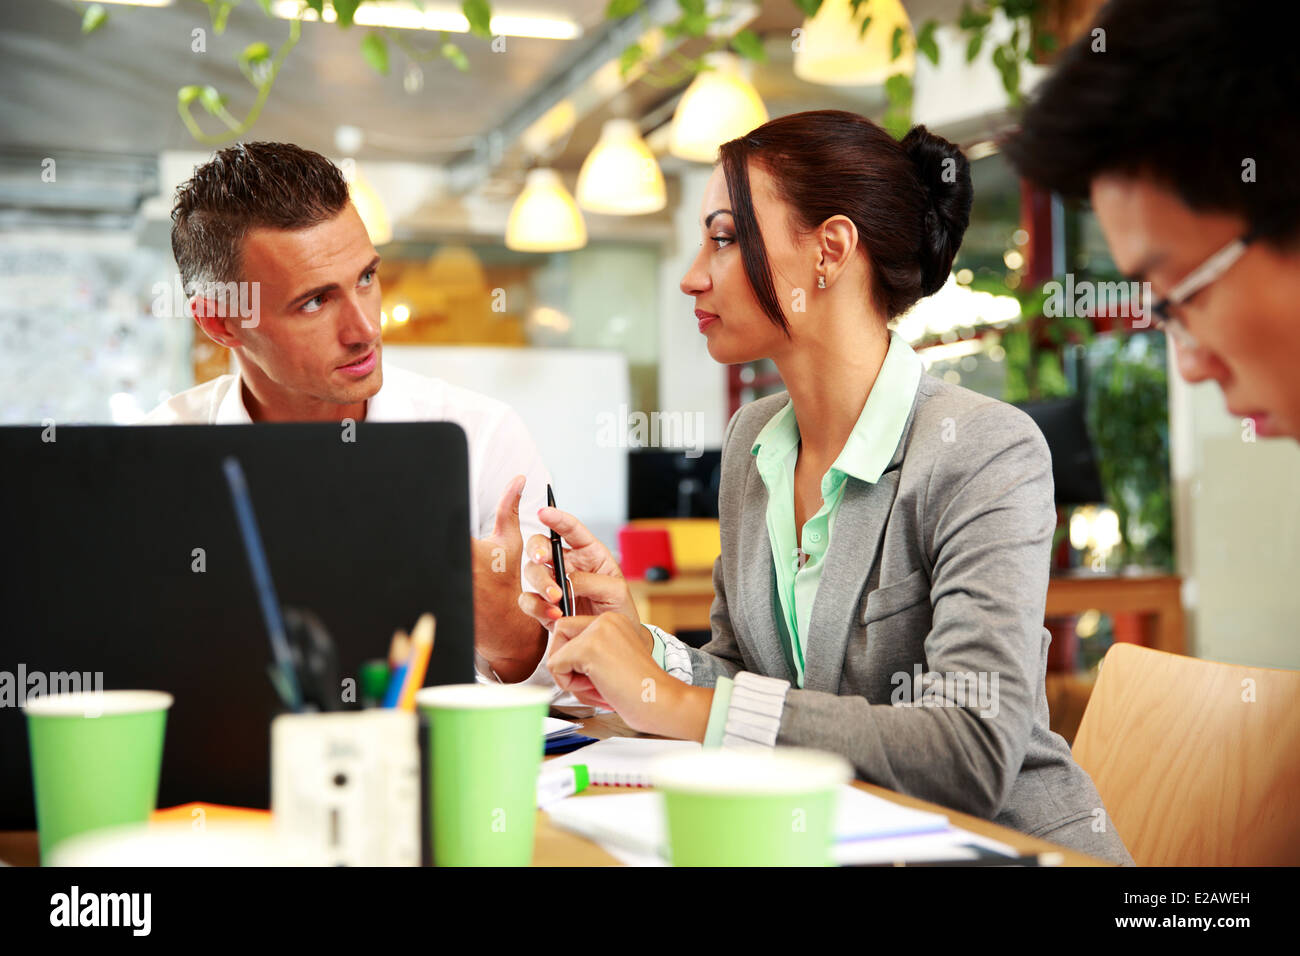 Business people having meeting around table in office - Stock Image